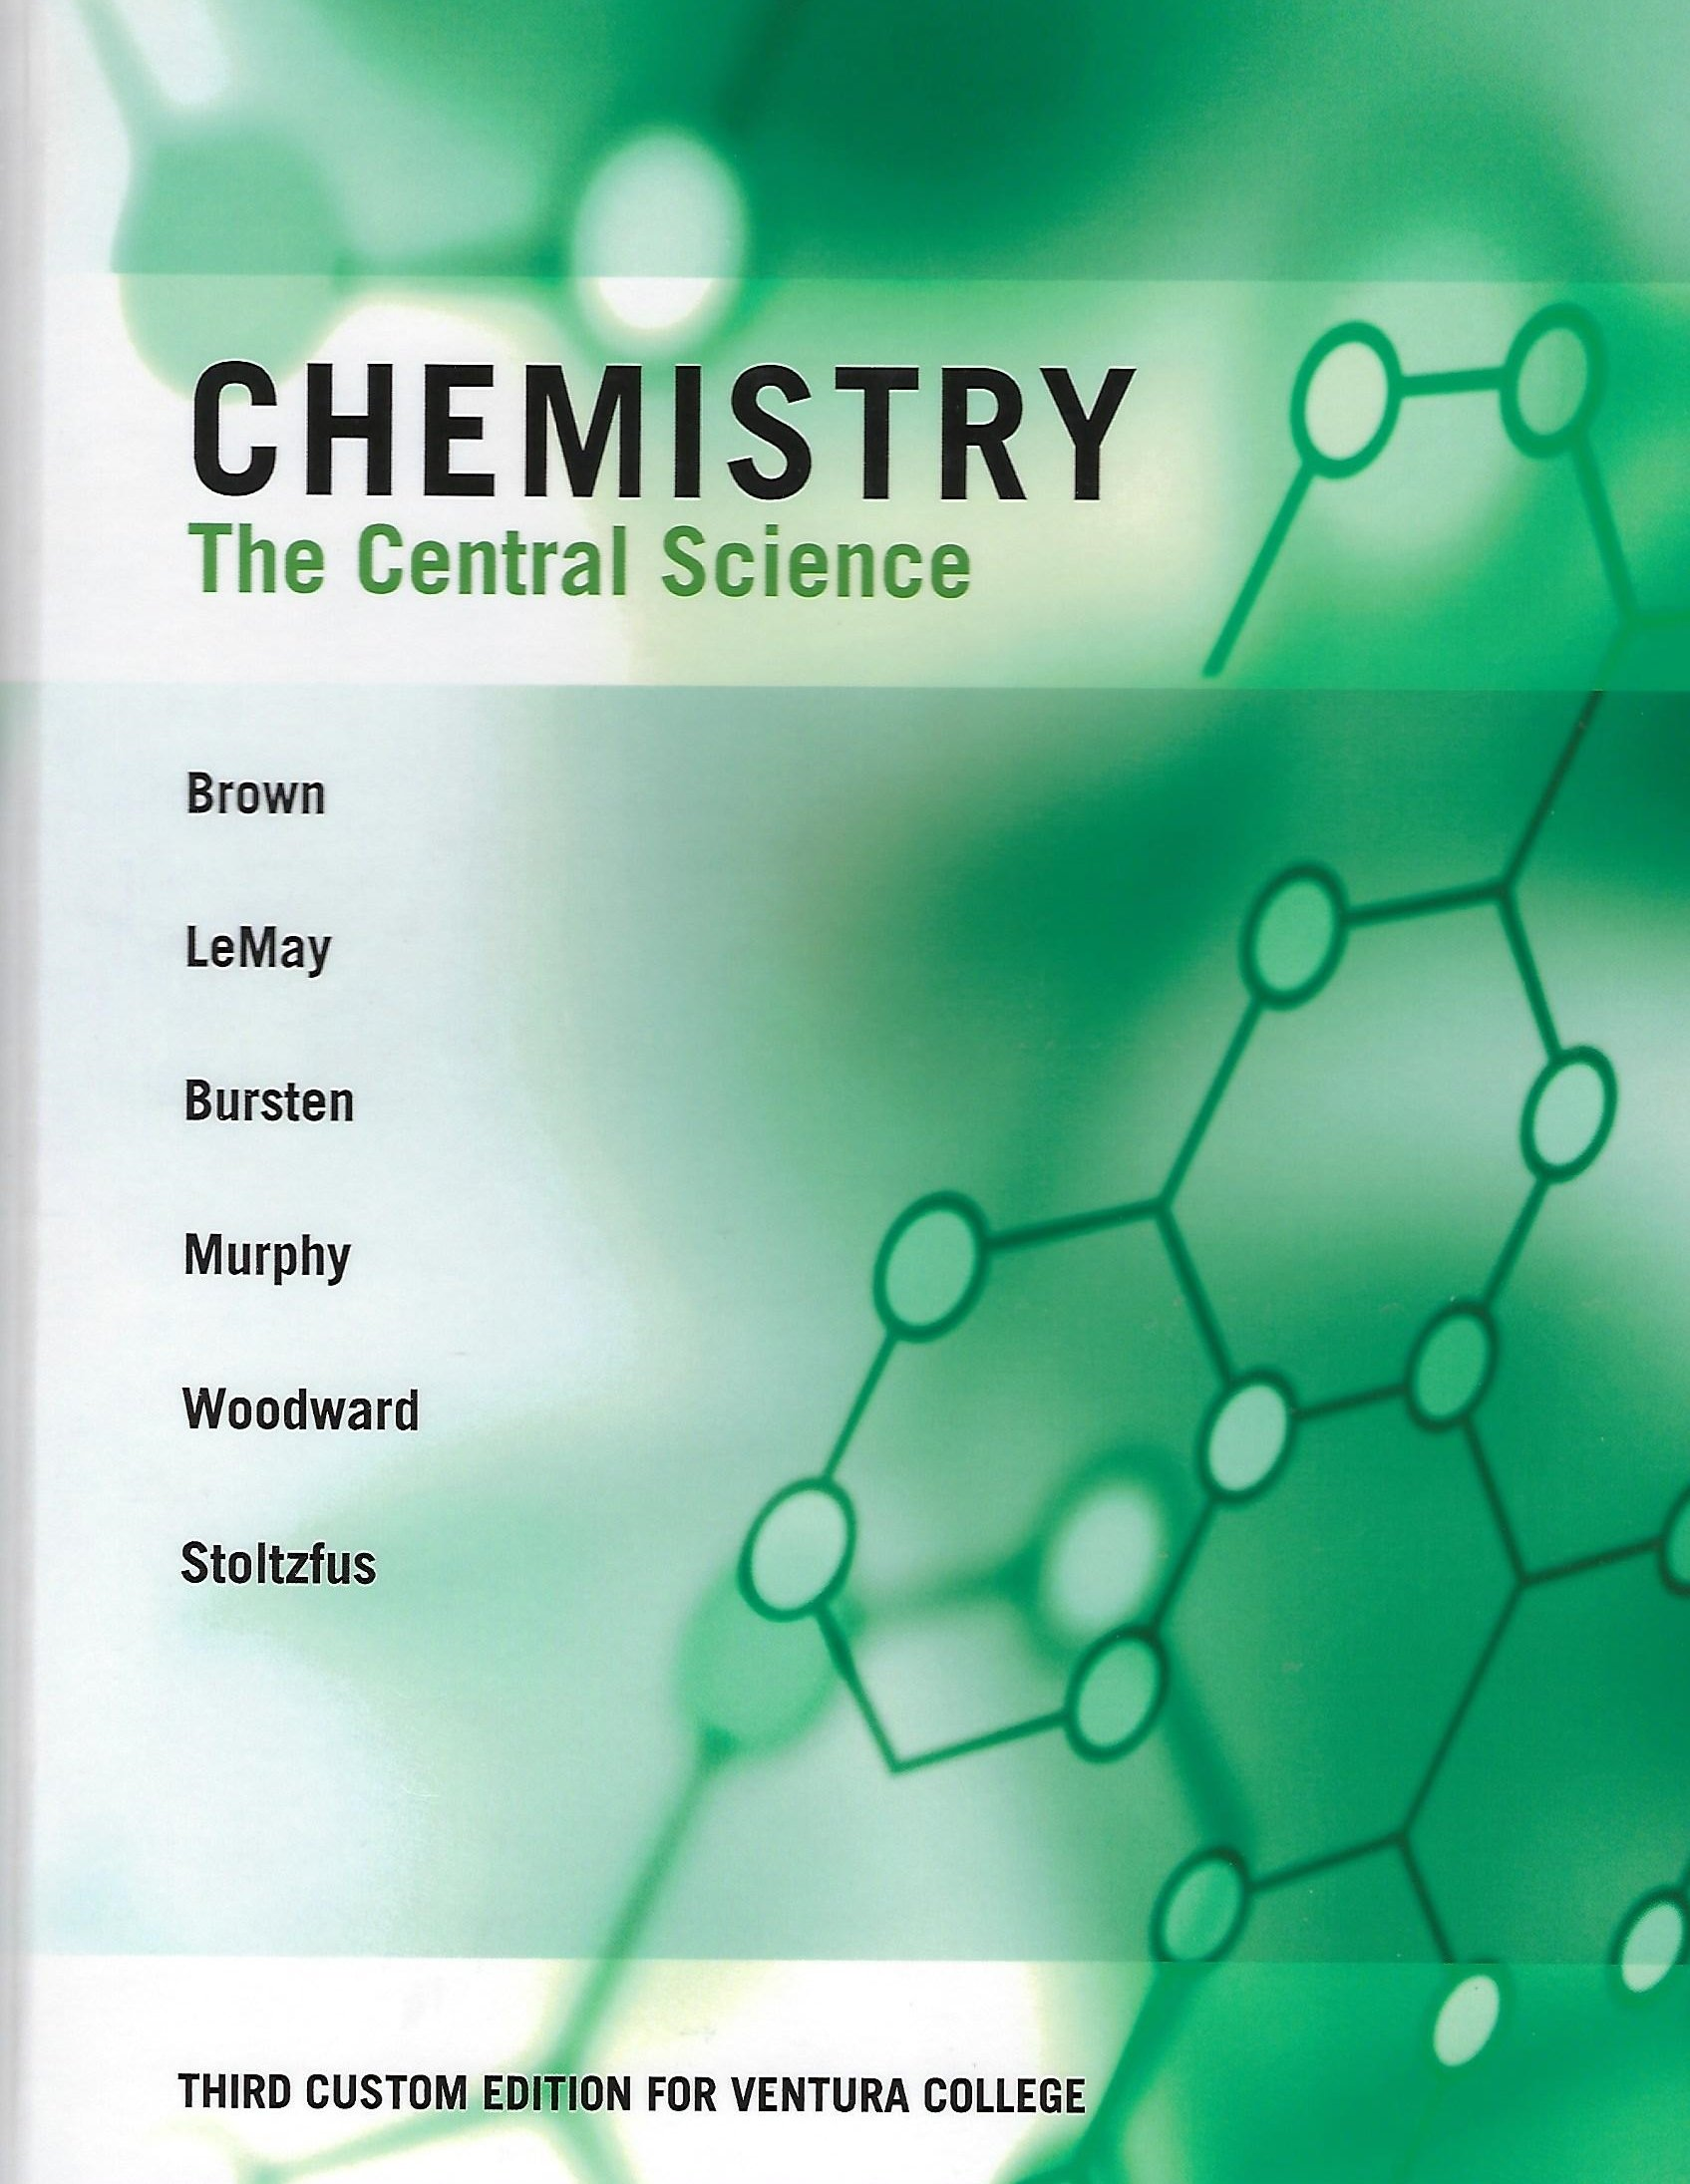 Chemistry The Central Science: Brown, LeMay, Bursten, Murphy, Woodward,  Stoltzfus: 9781269911740: Amazon.com: Books